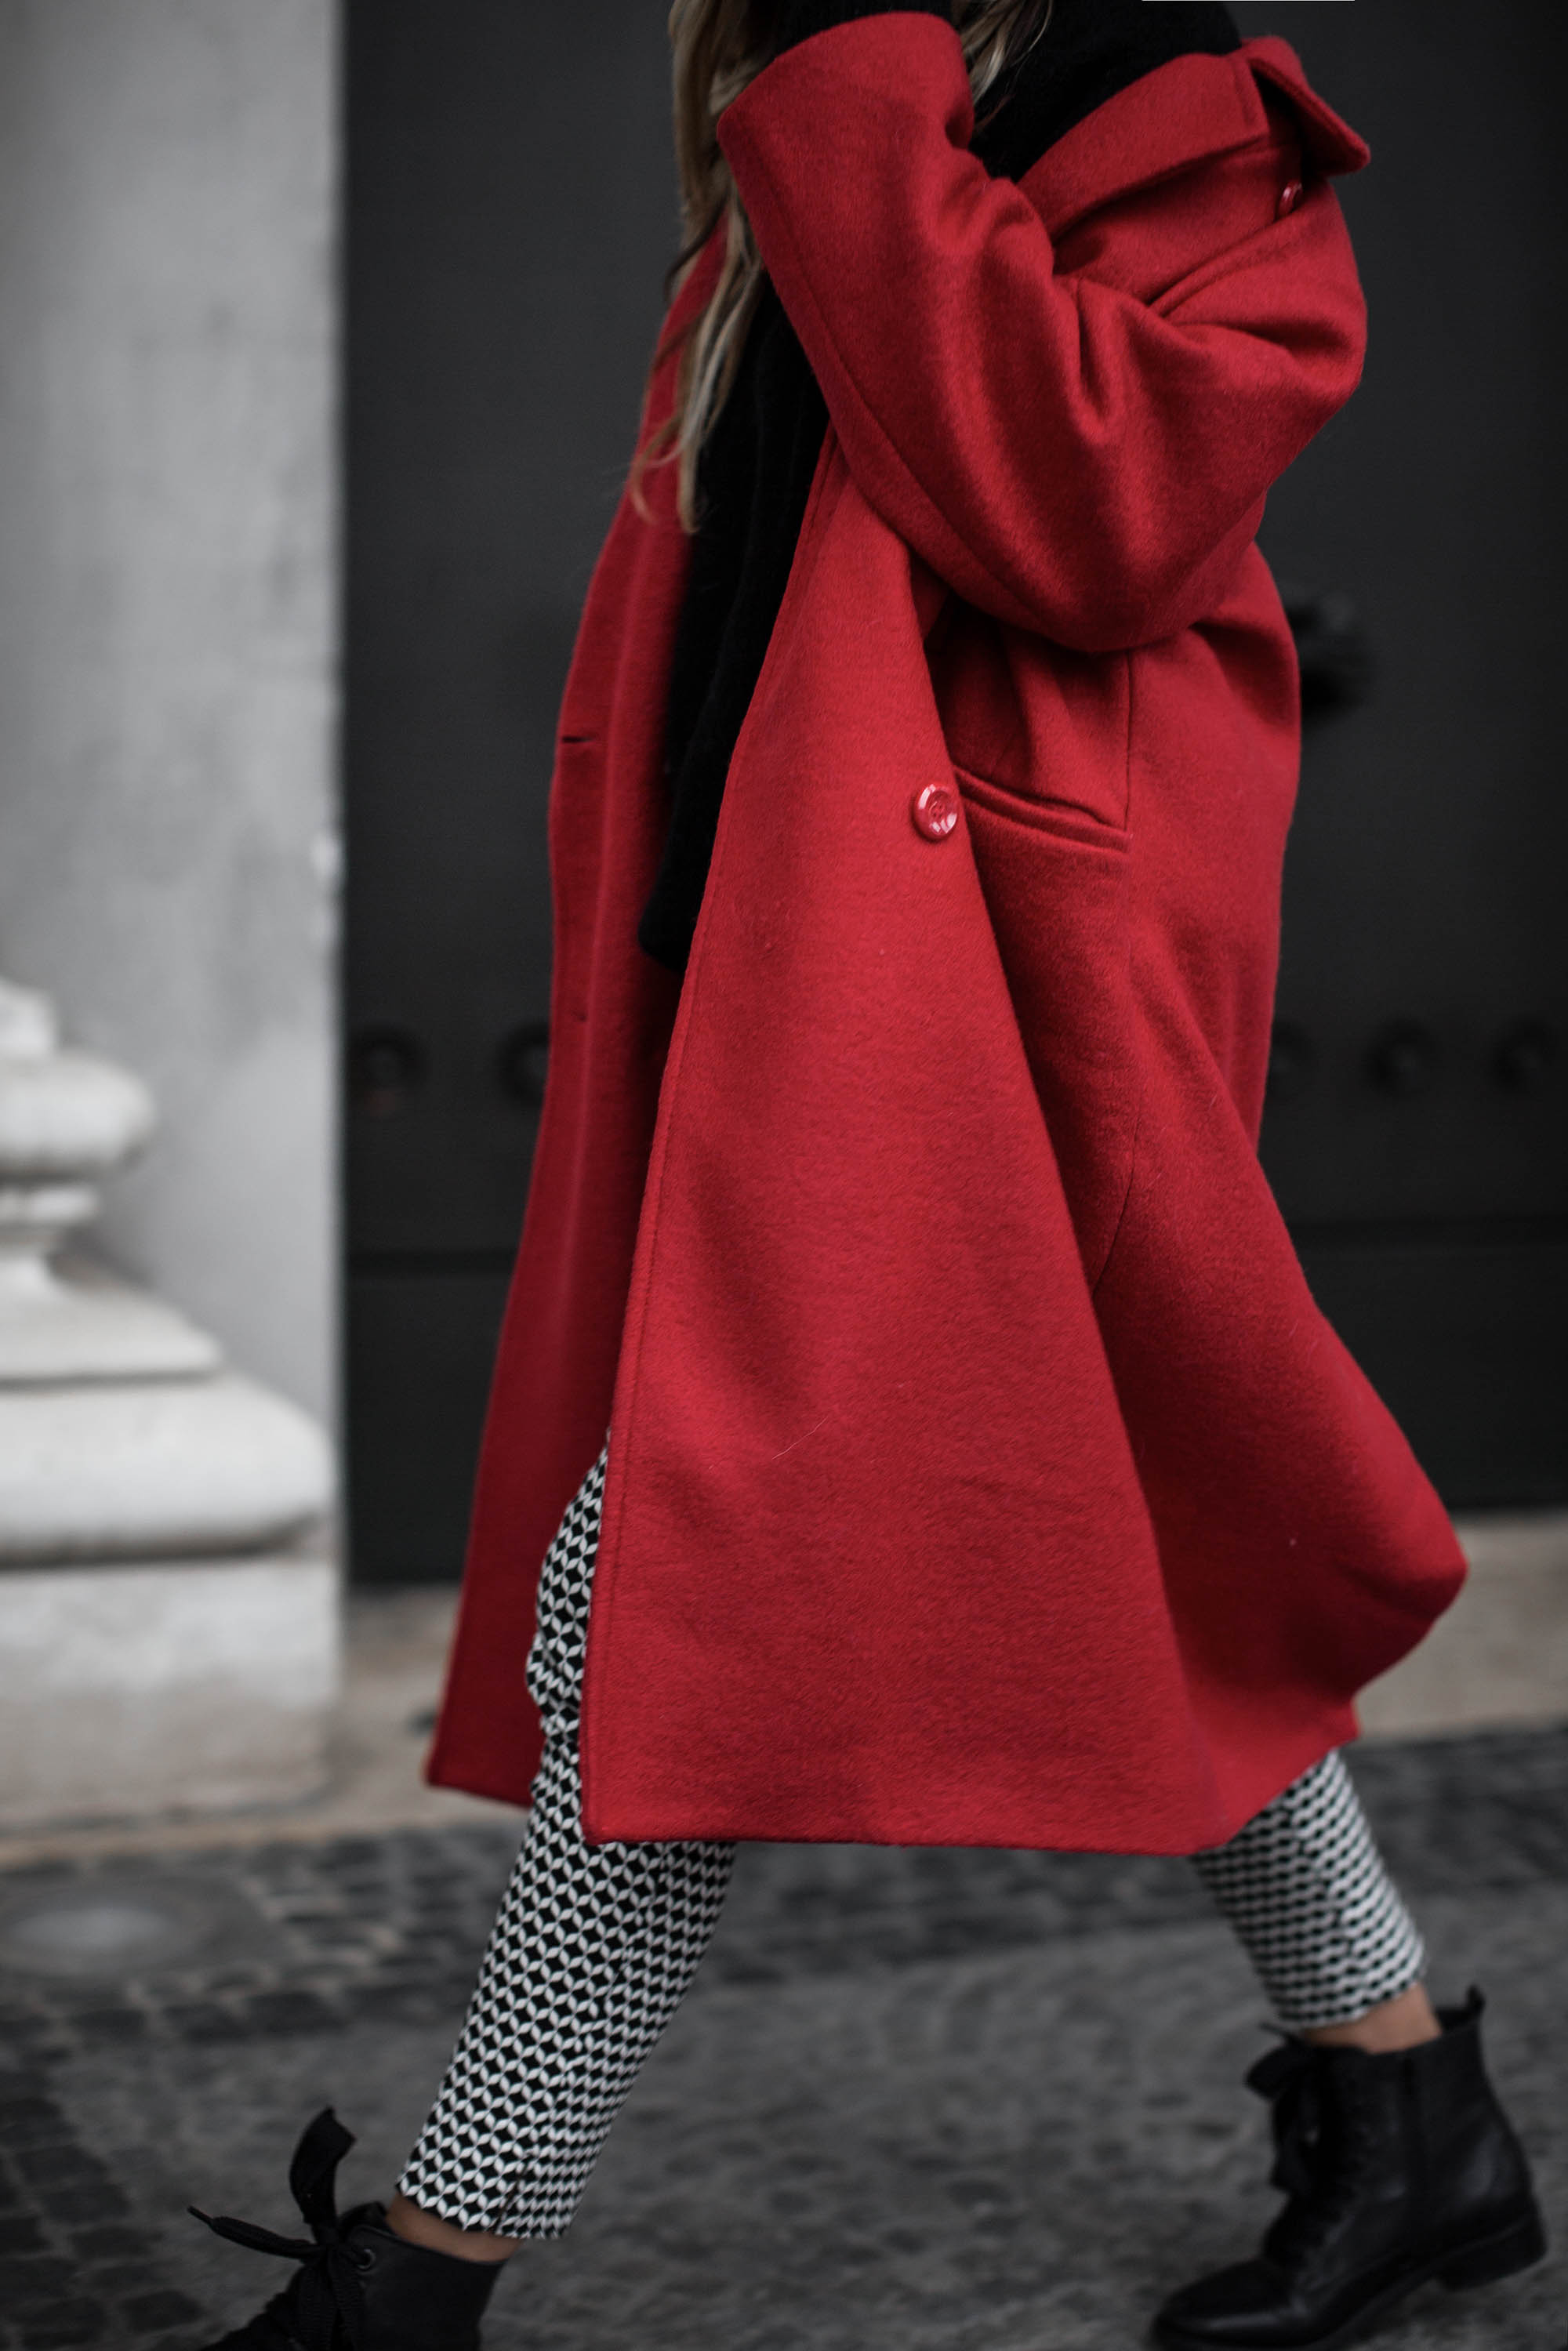 black-palms-hm-roter-mantel-boots-edited-streestyle-fashionblog-4